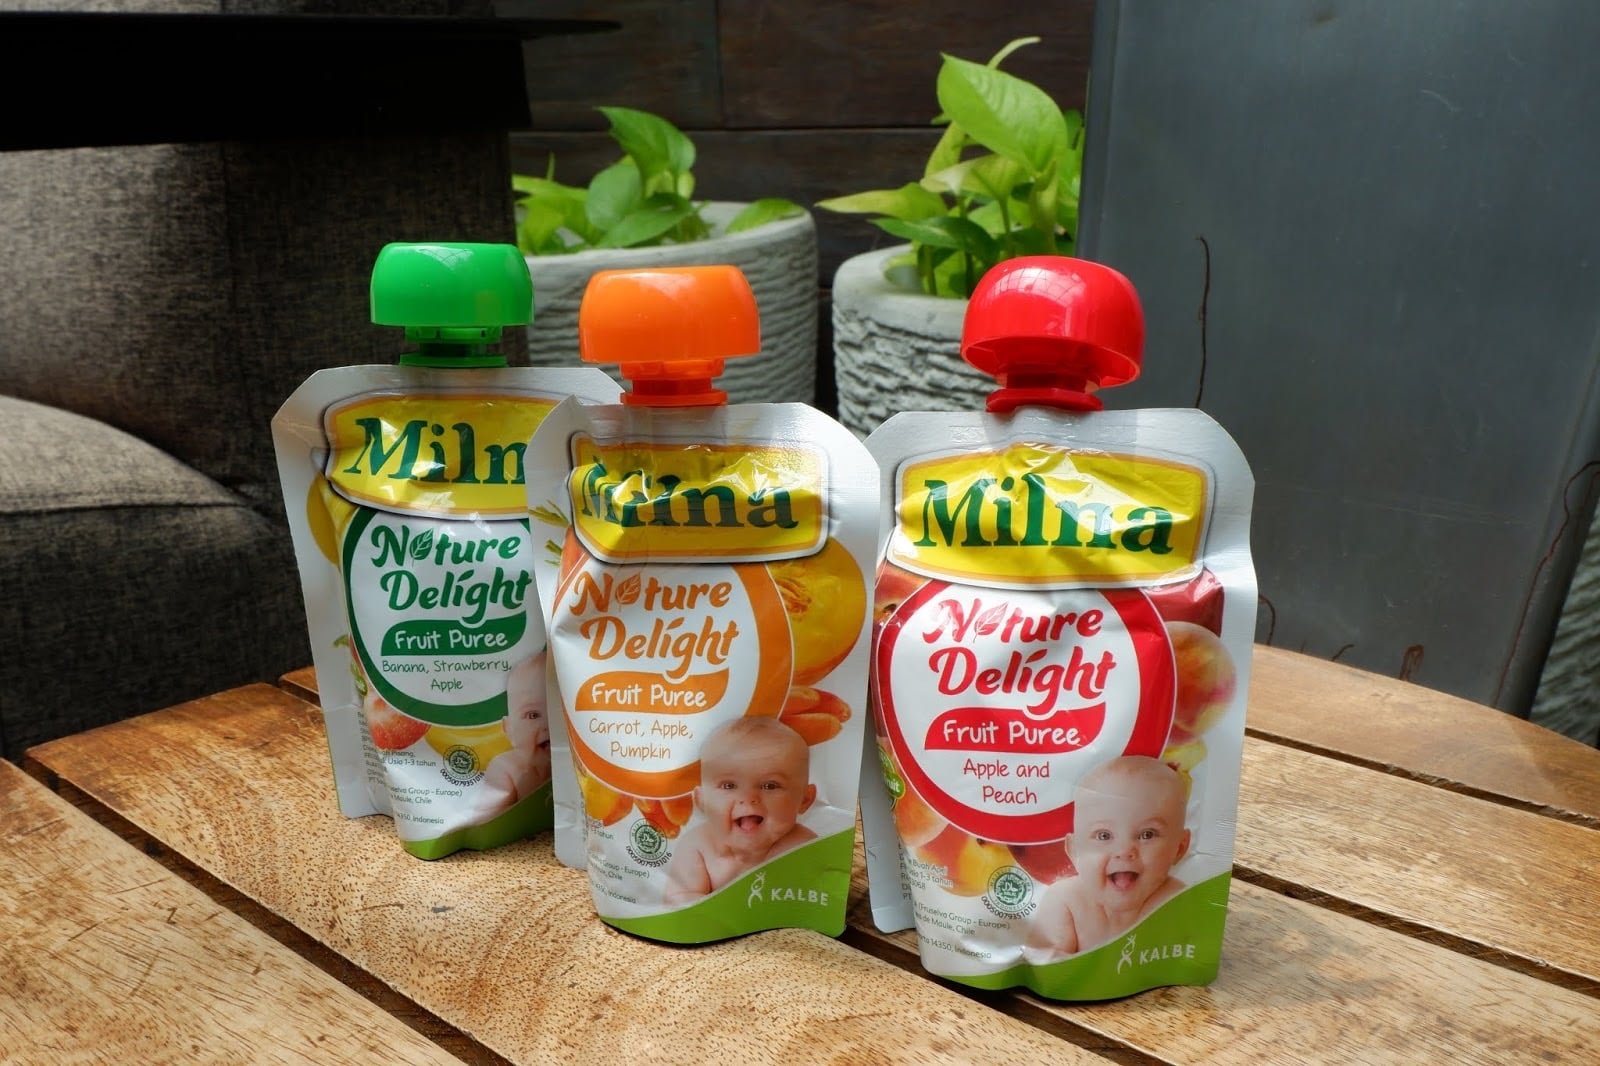 Milna-Nature-Delight-Apple-Peach